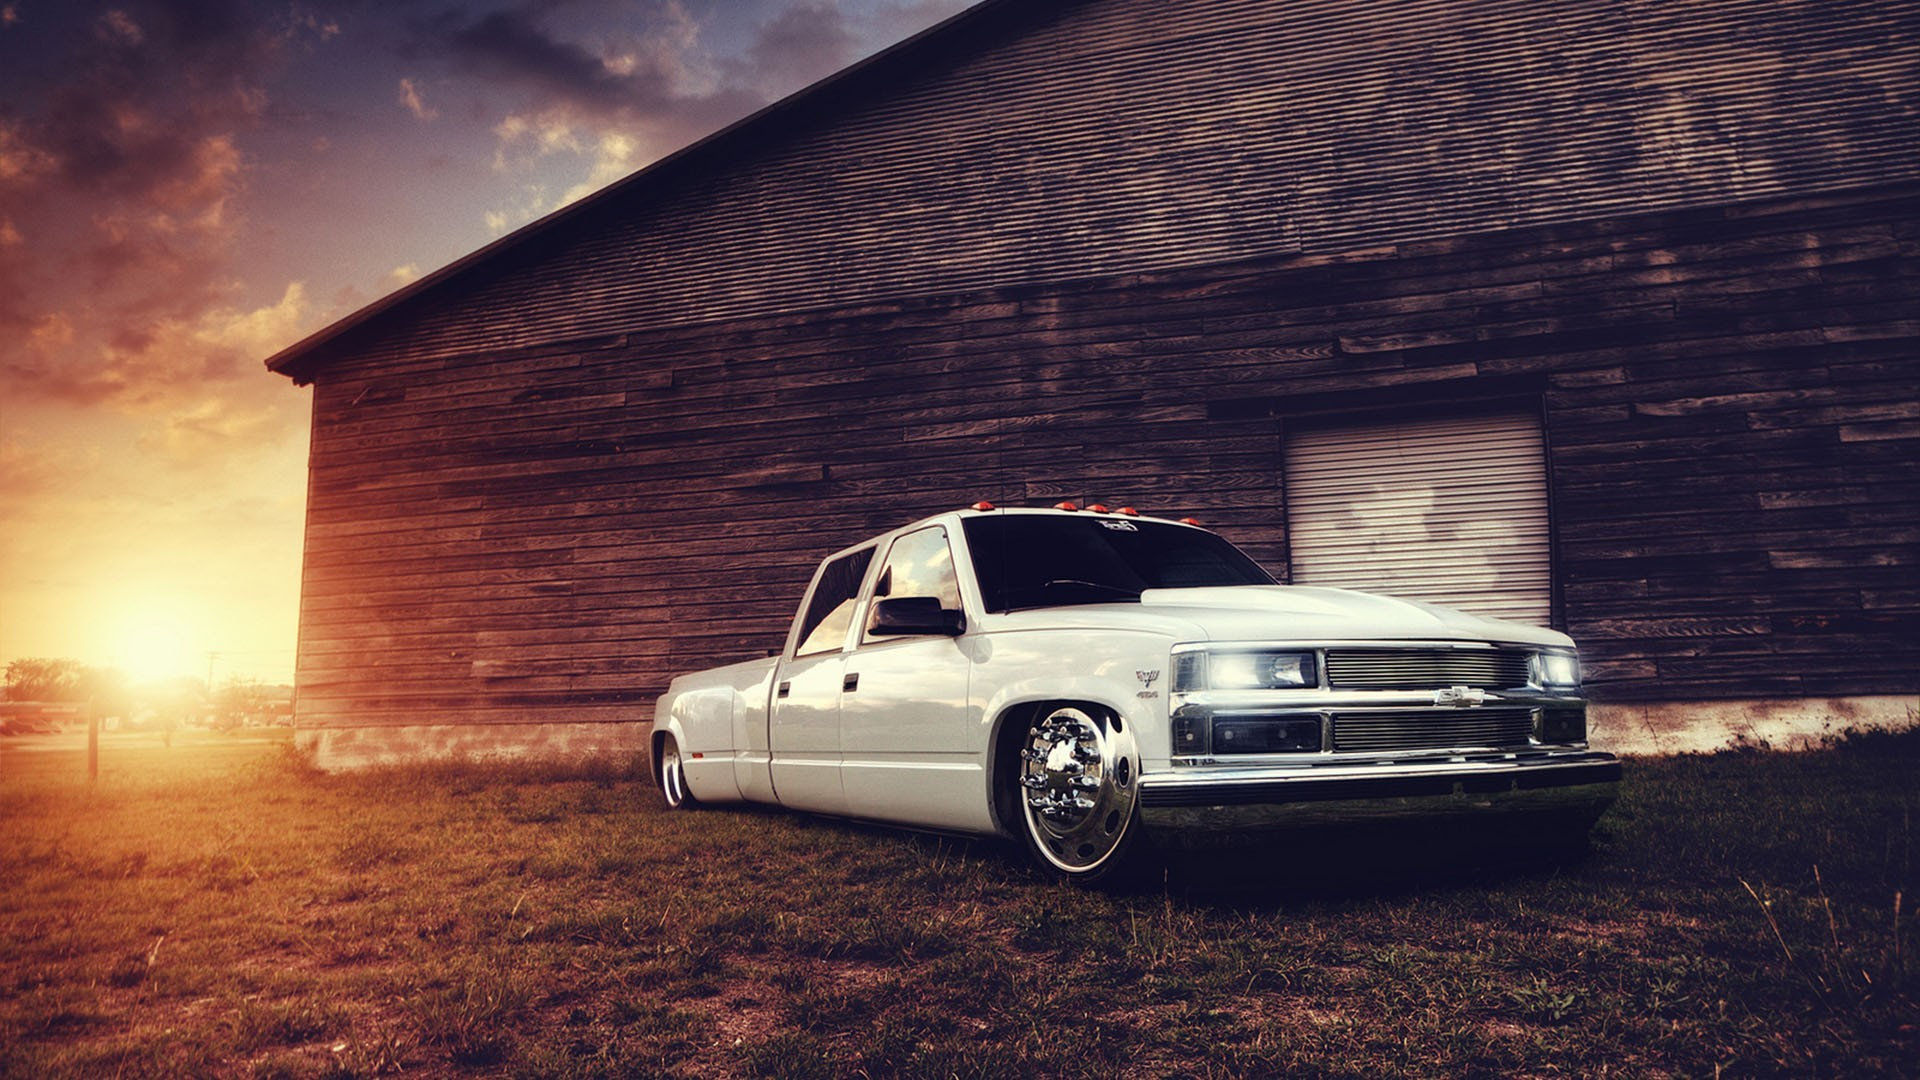 Chevy Truck Wallpaper HD (48+ images)